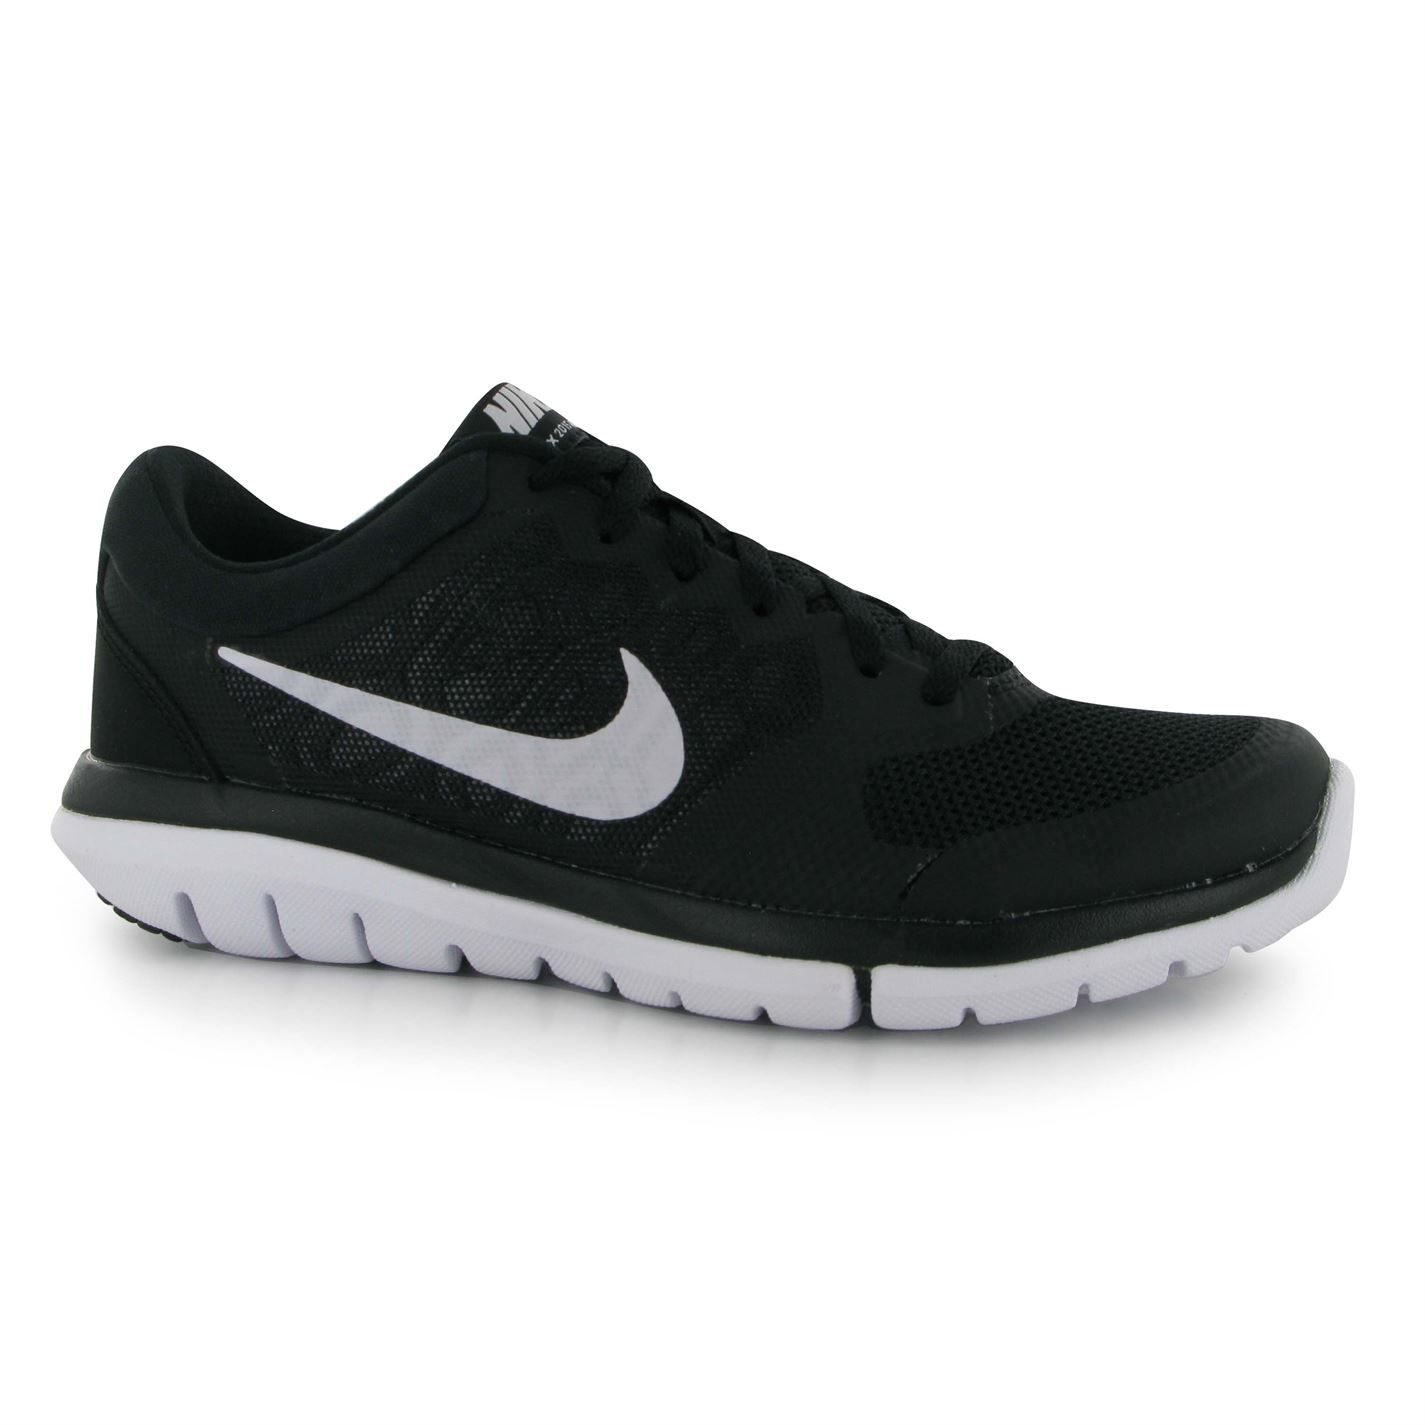 nike flex 2015 ladies running shoes